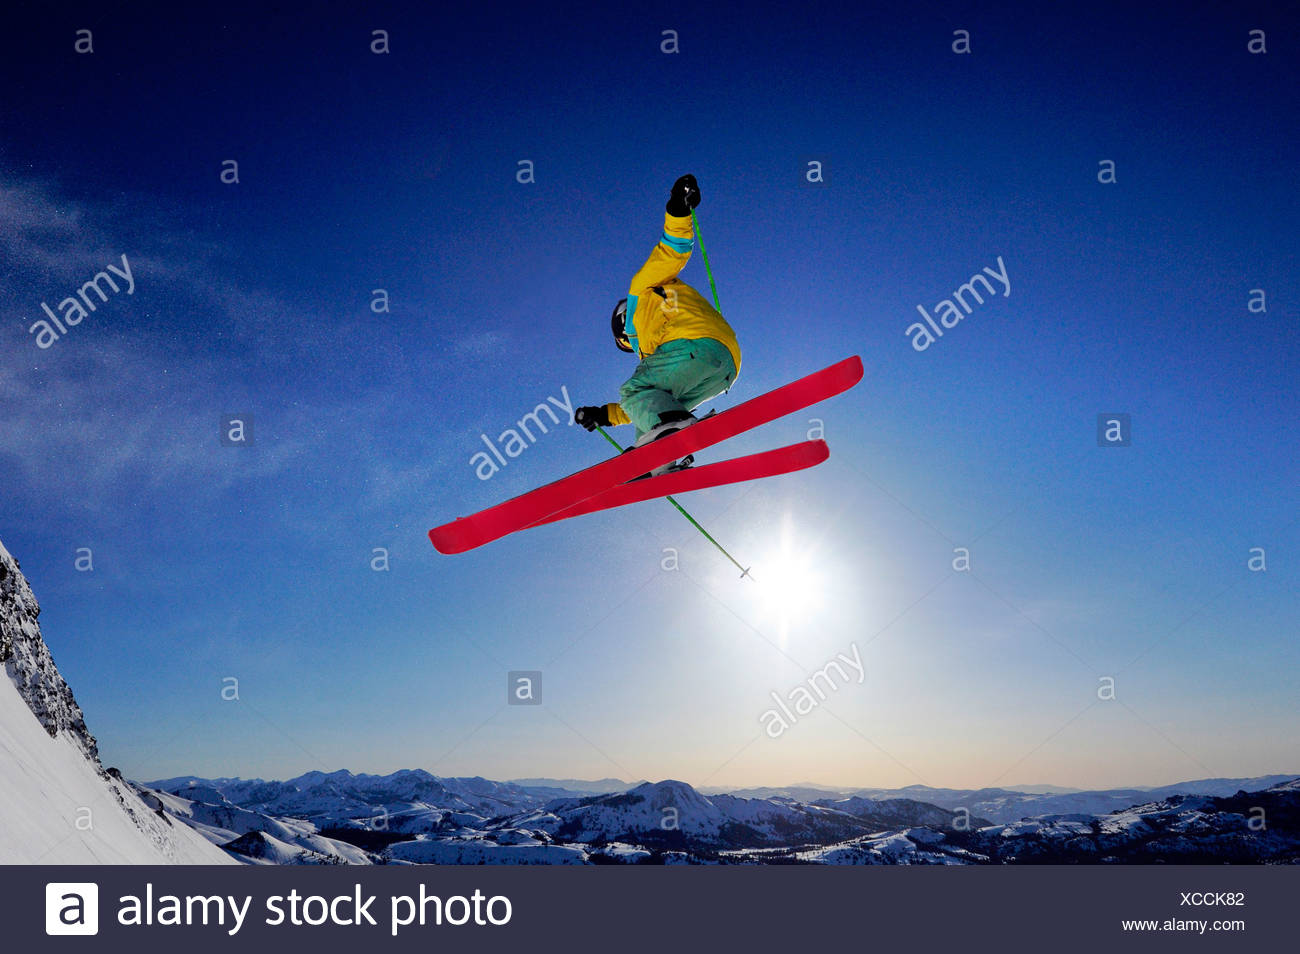 A skier soars through the air at sunrise in the Sierra Nevada mountains near Lake Tahoe, California. - Stock Image